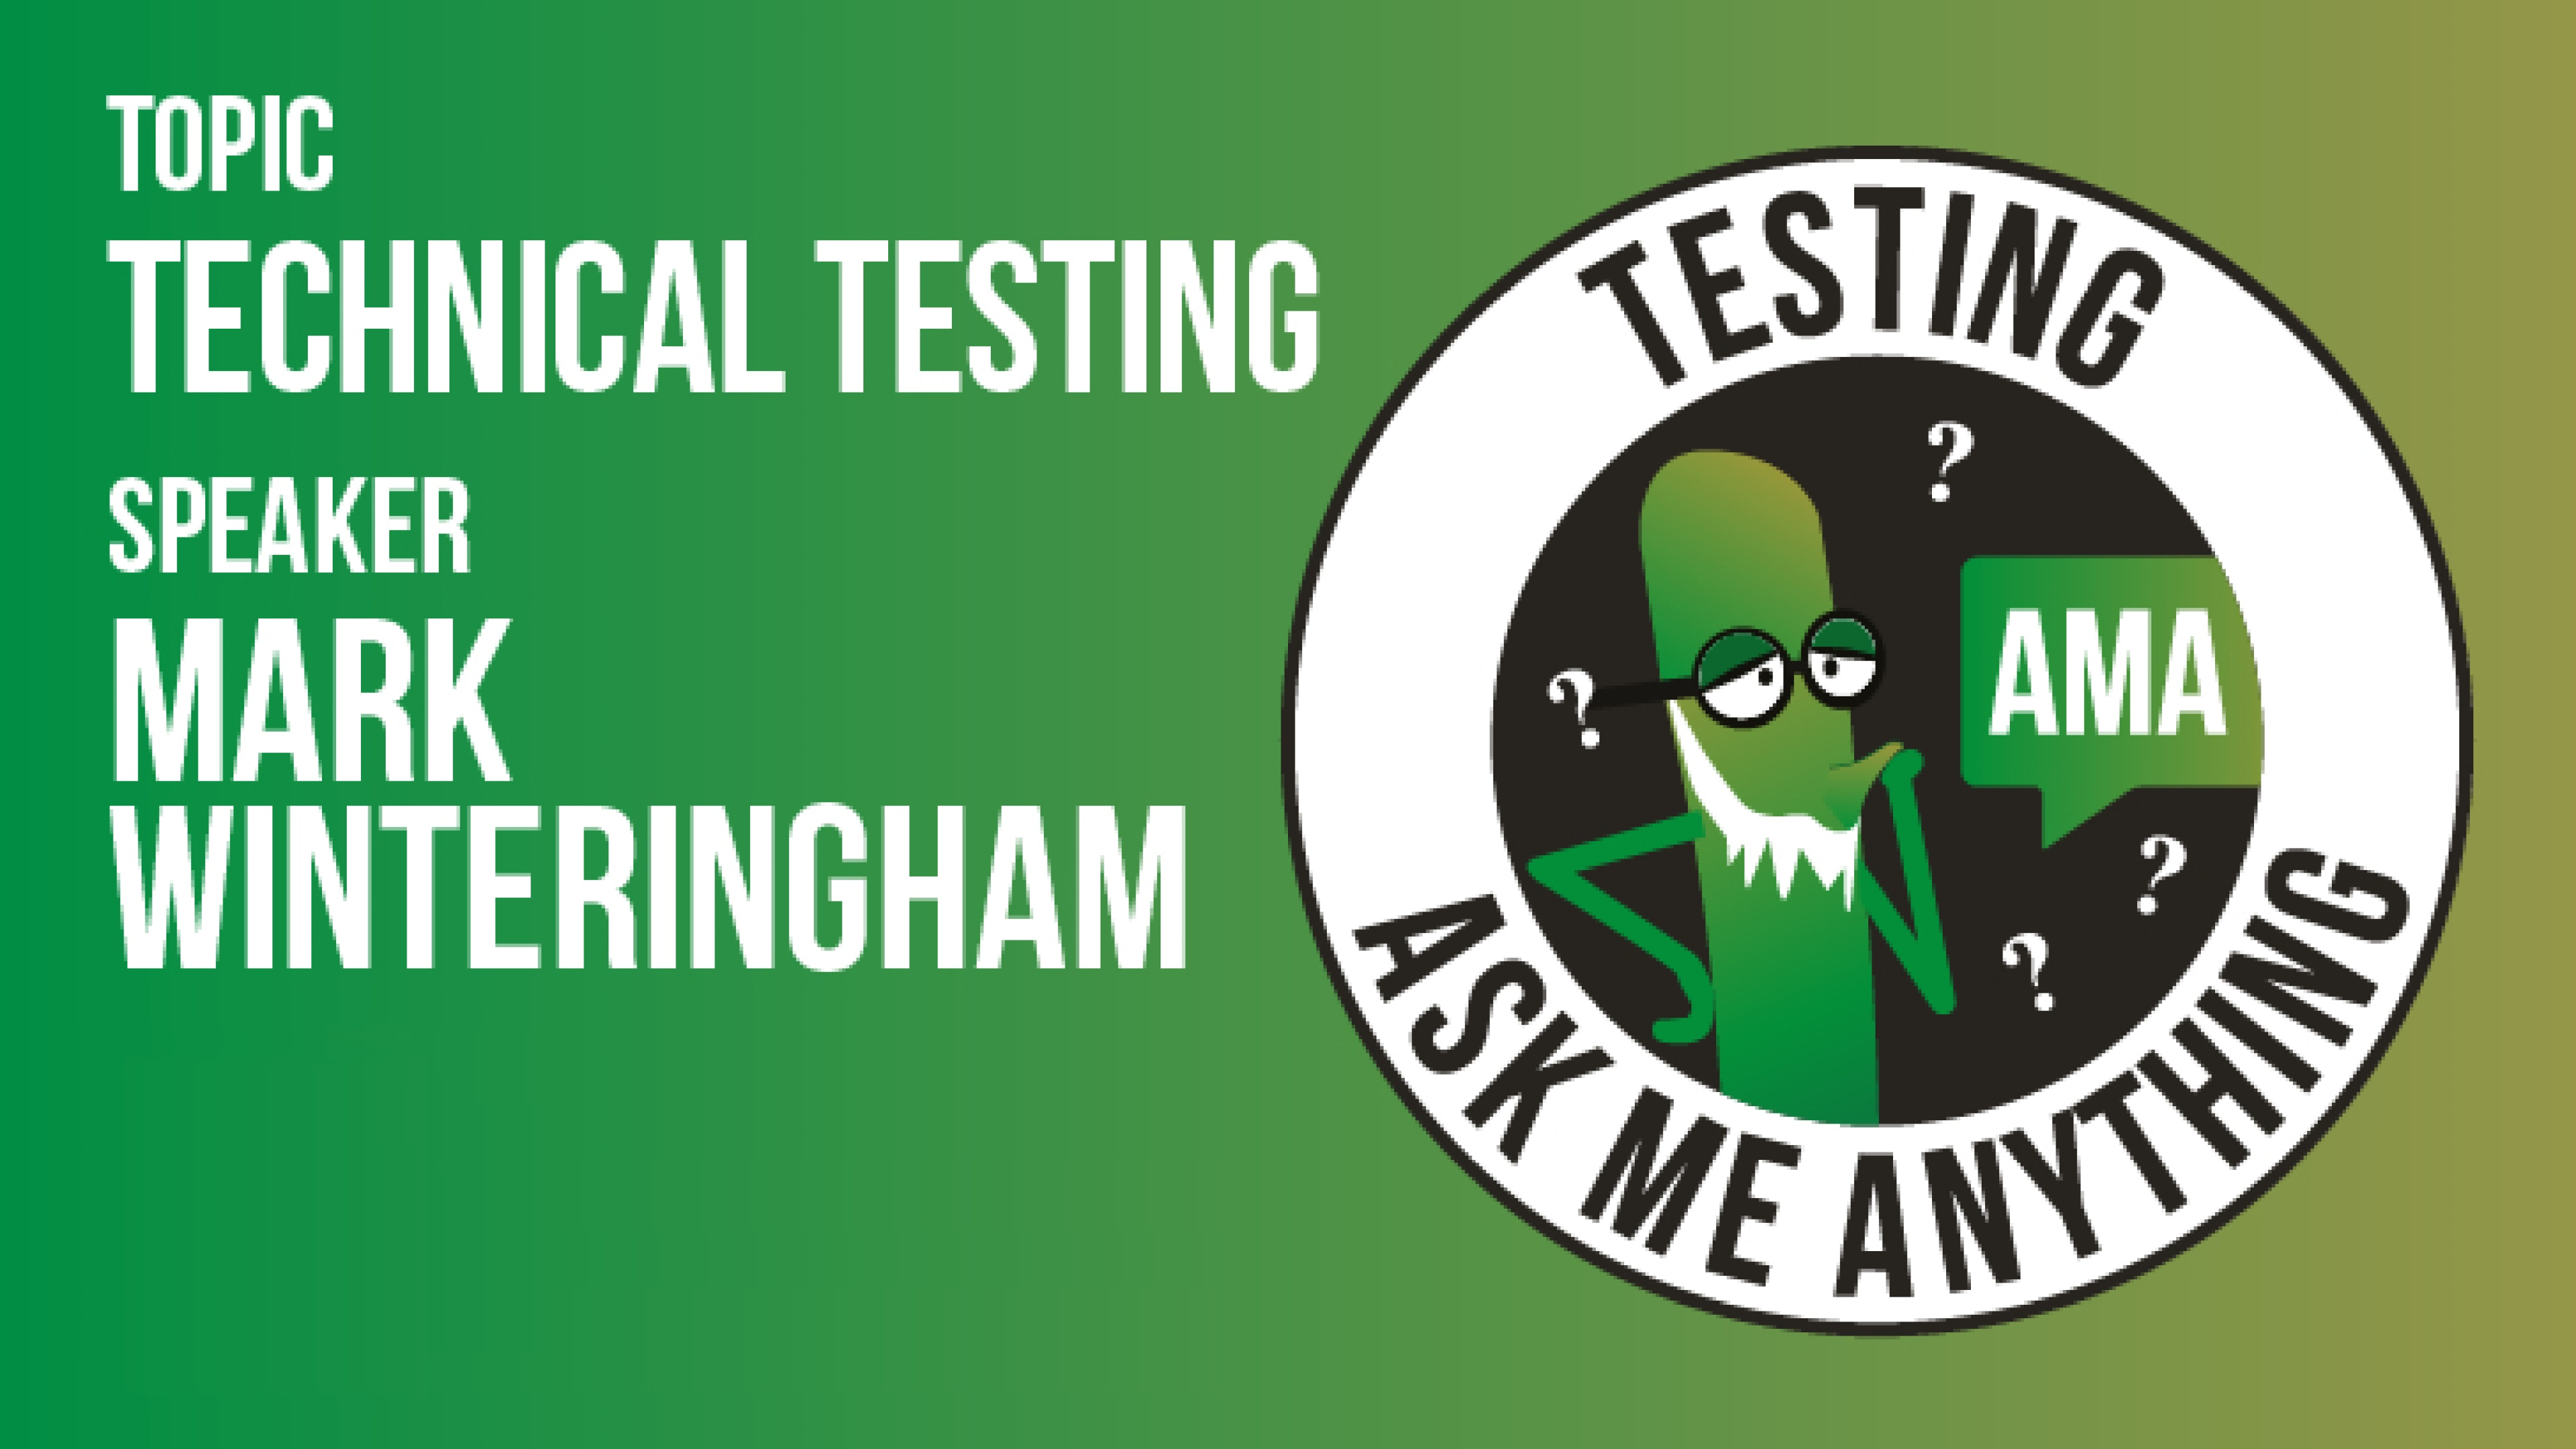 Ask Me Anything - Mark Winteringham - Technical Testing